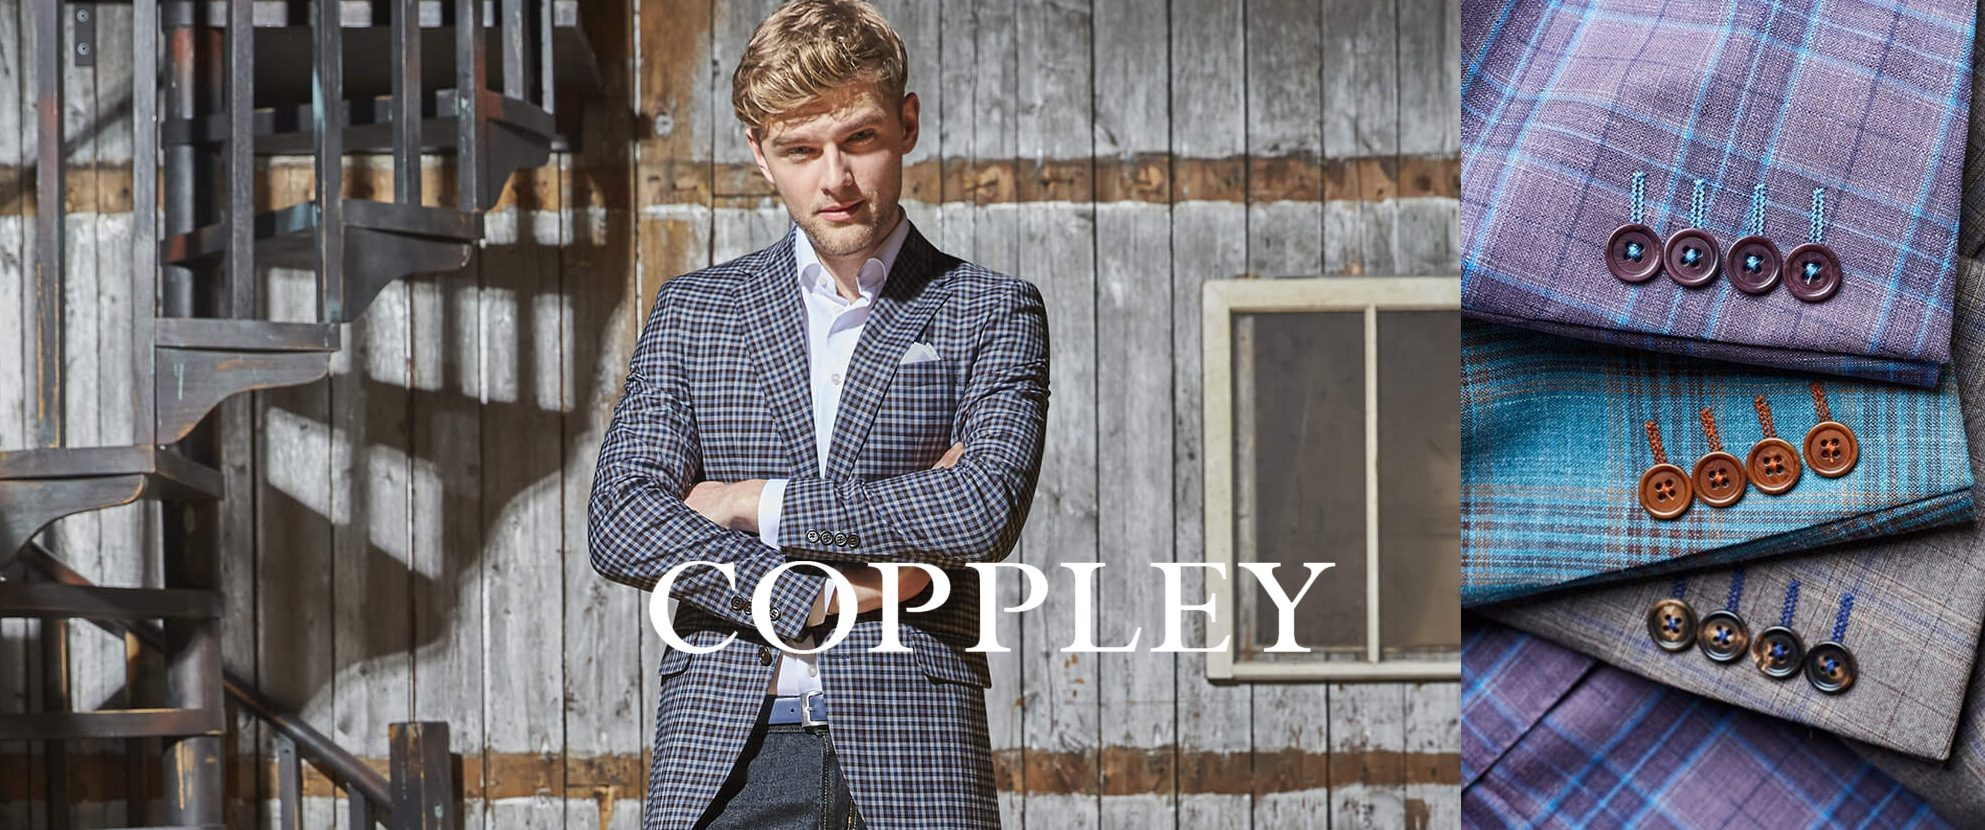 Home Featured Brand: Coppley